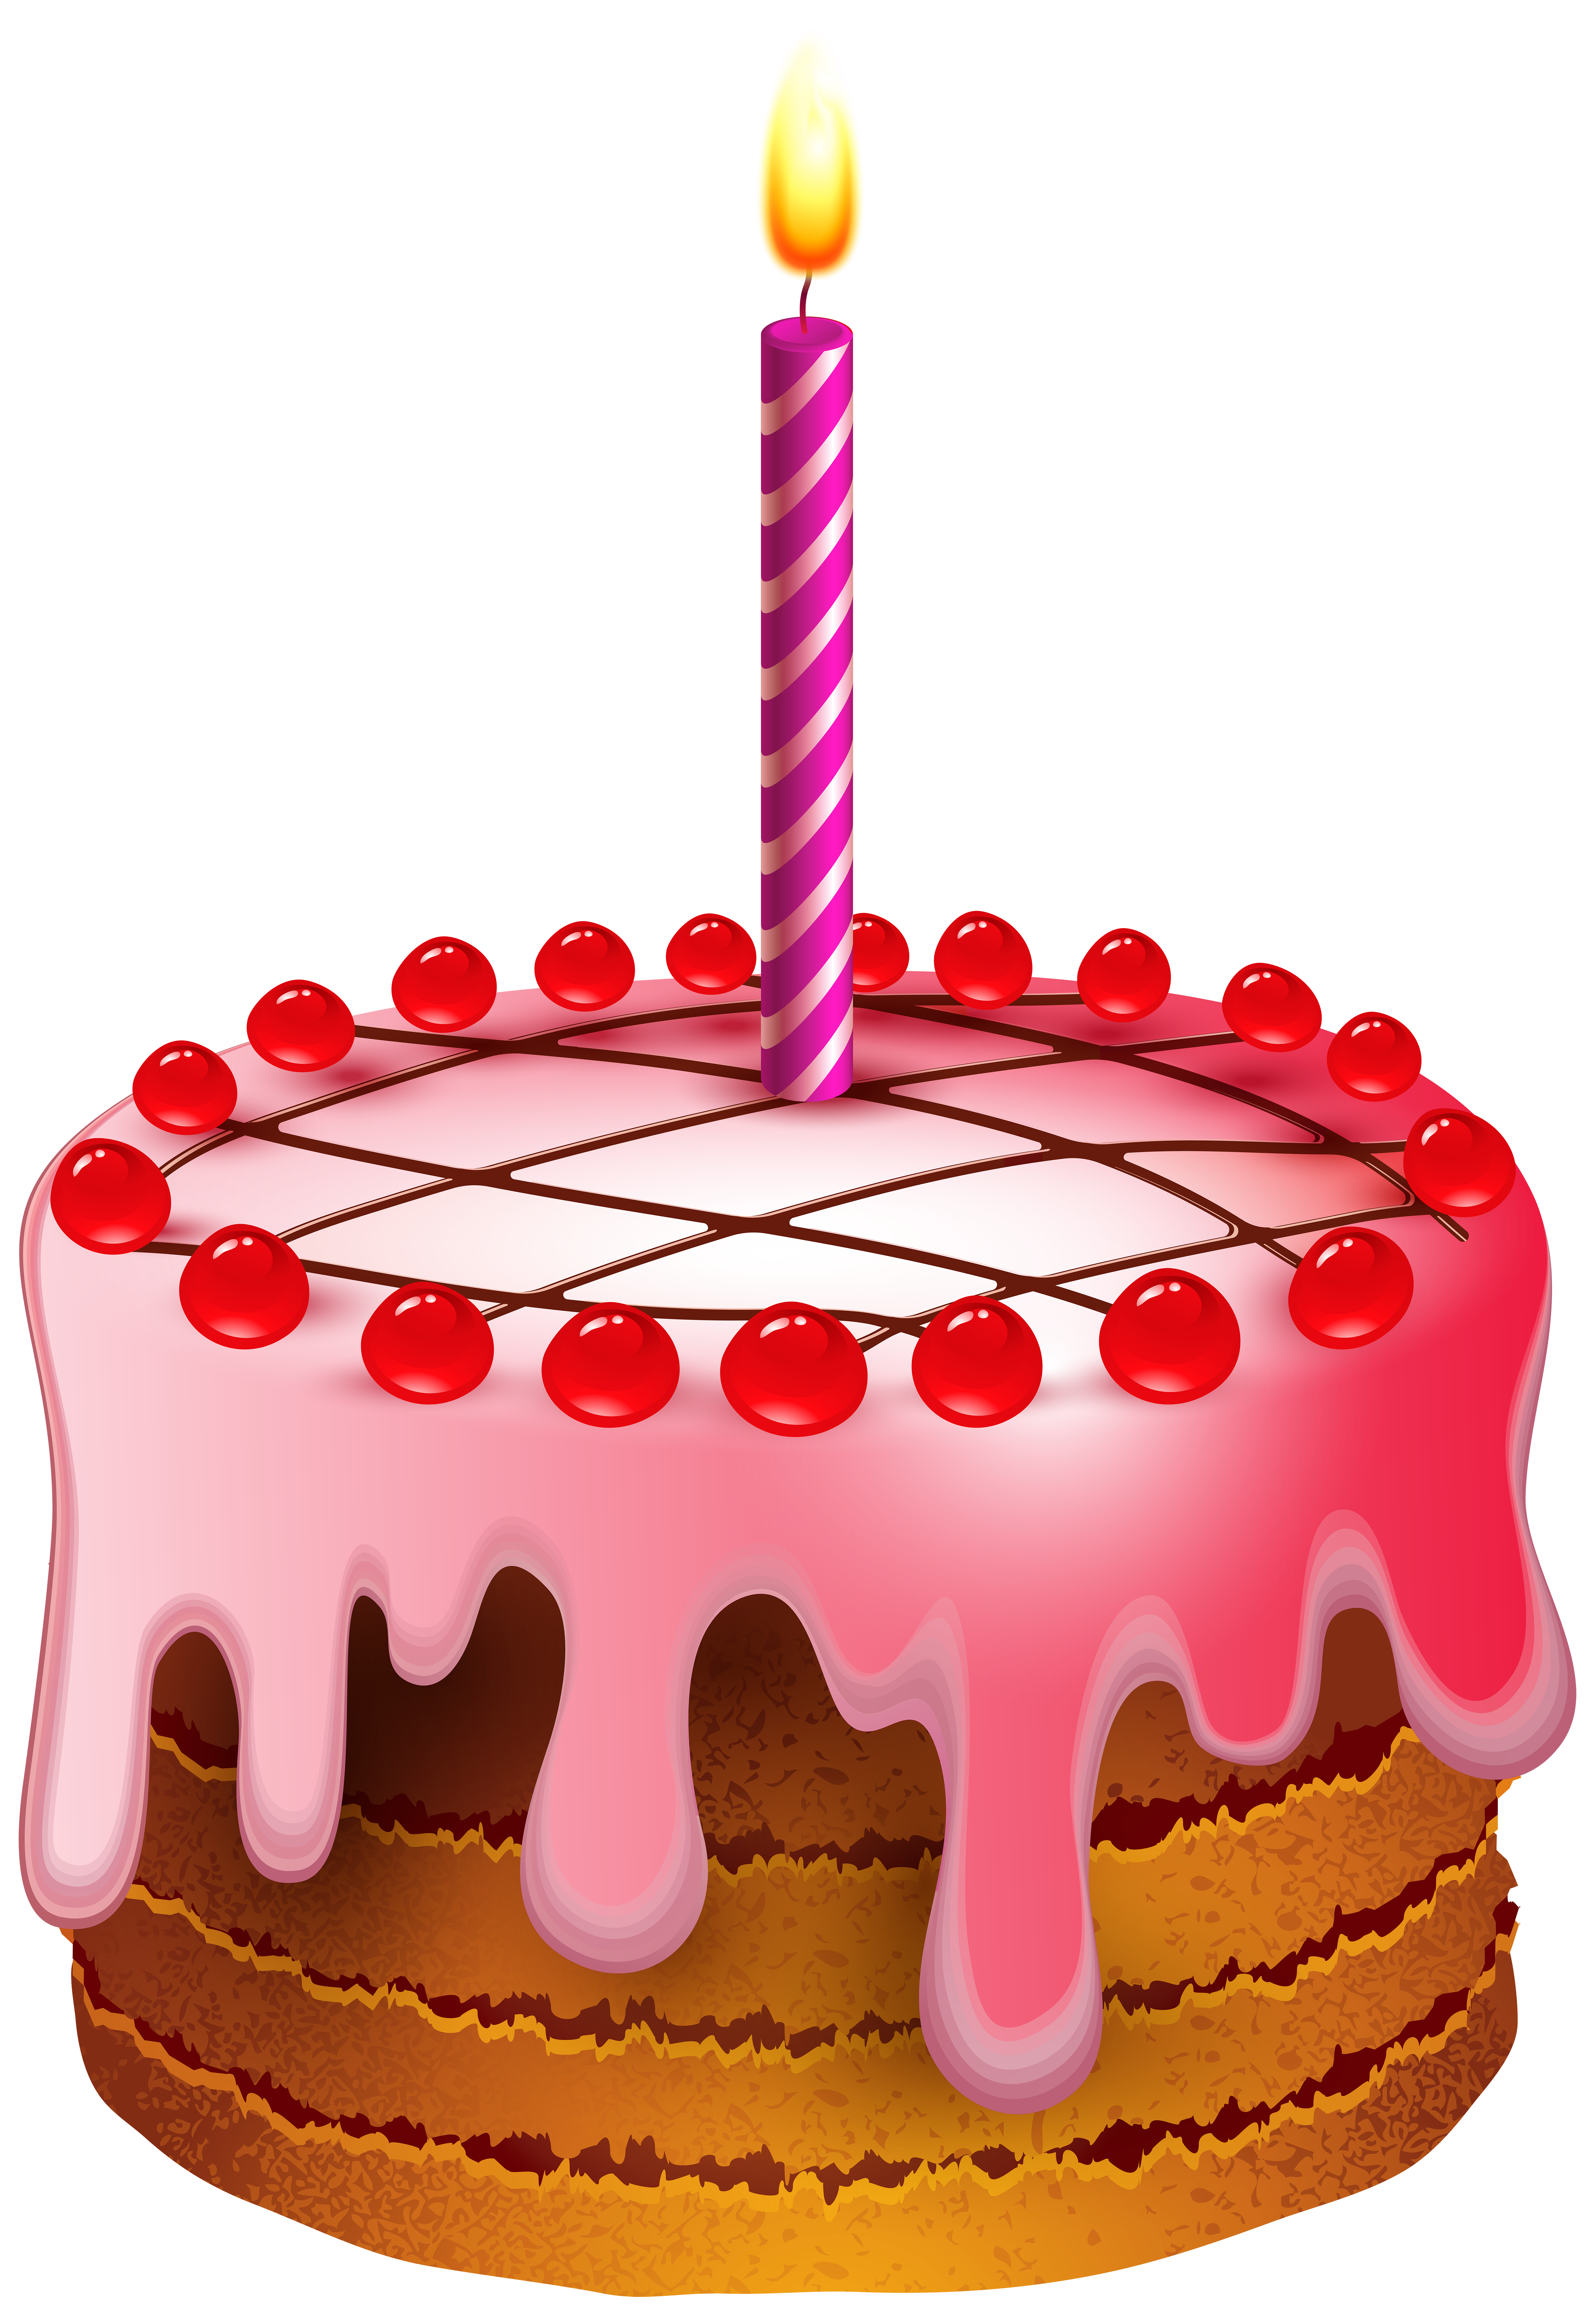 Free clipart birthday cake with candles png royalty free Birthday Cake with Candle Transparent Clip Art Image | Gallery ... png royalty free